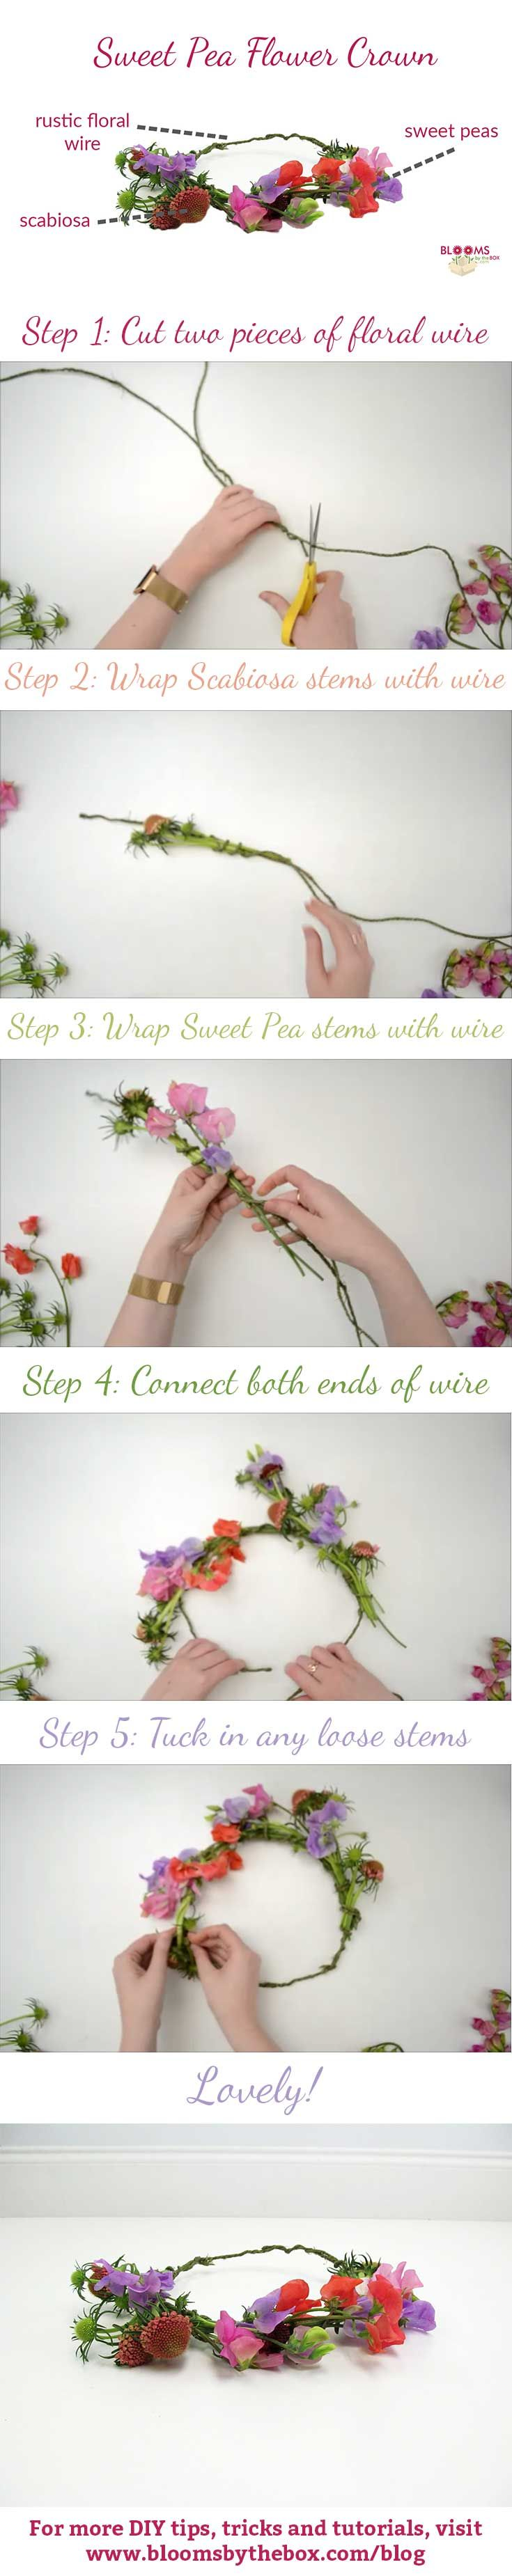 Take your bridal party to the next level with these darling sweet pea flower crowns! The rustic scabiosa stems make it the perfect accessory for a boho bridal shower or wedding!